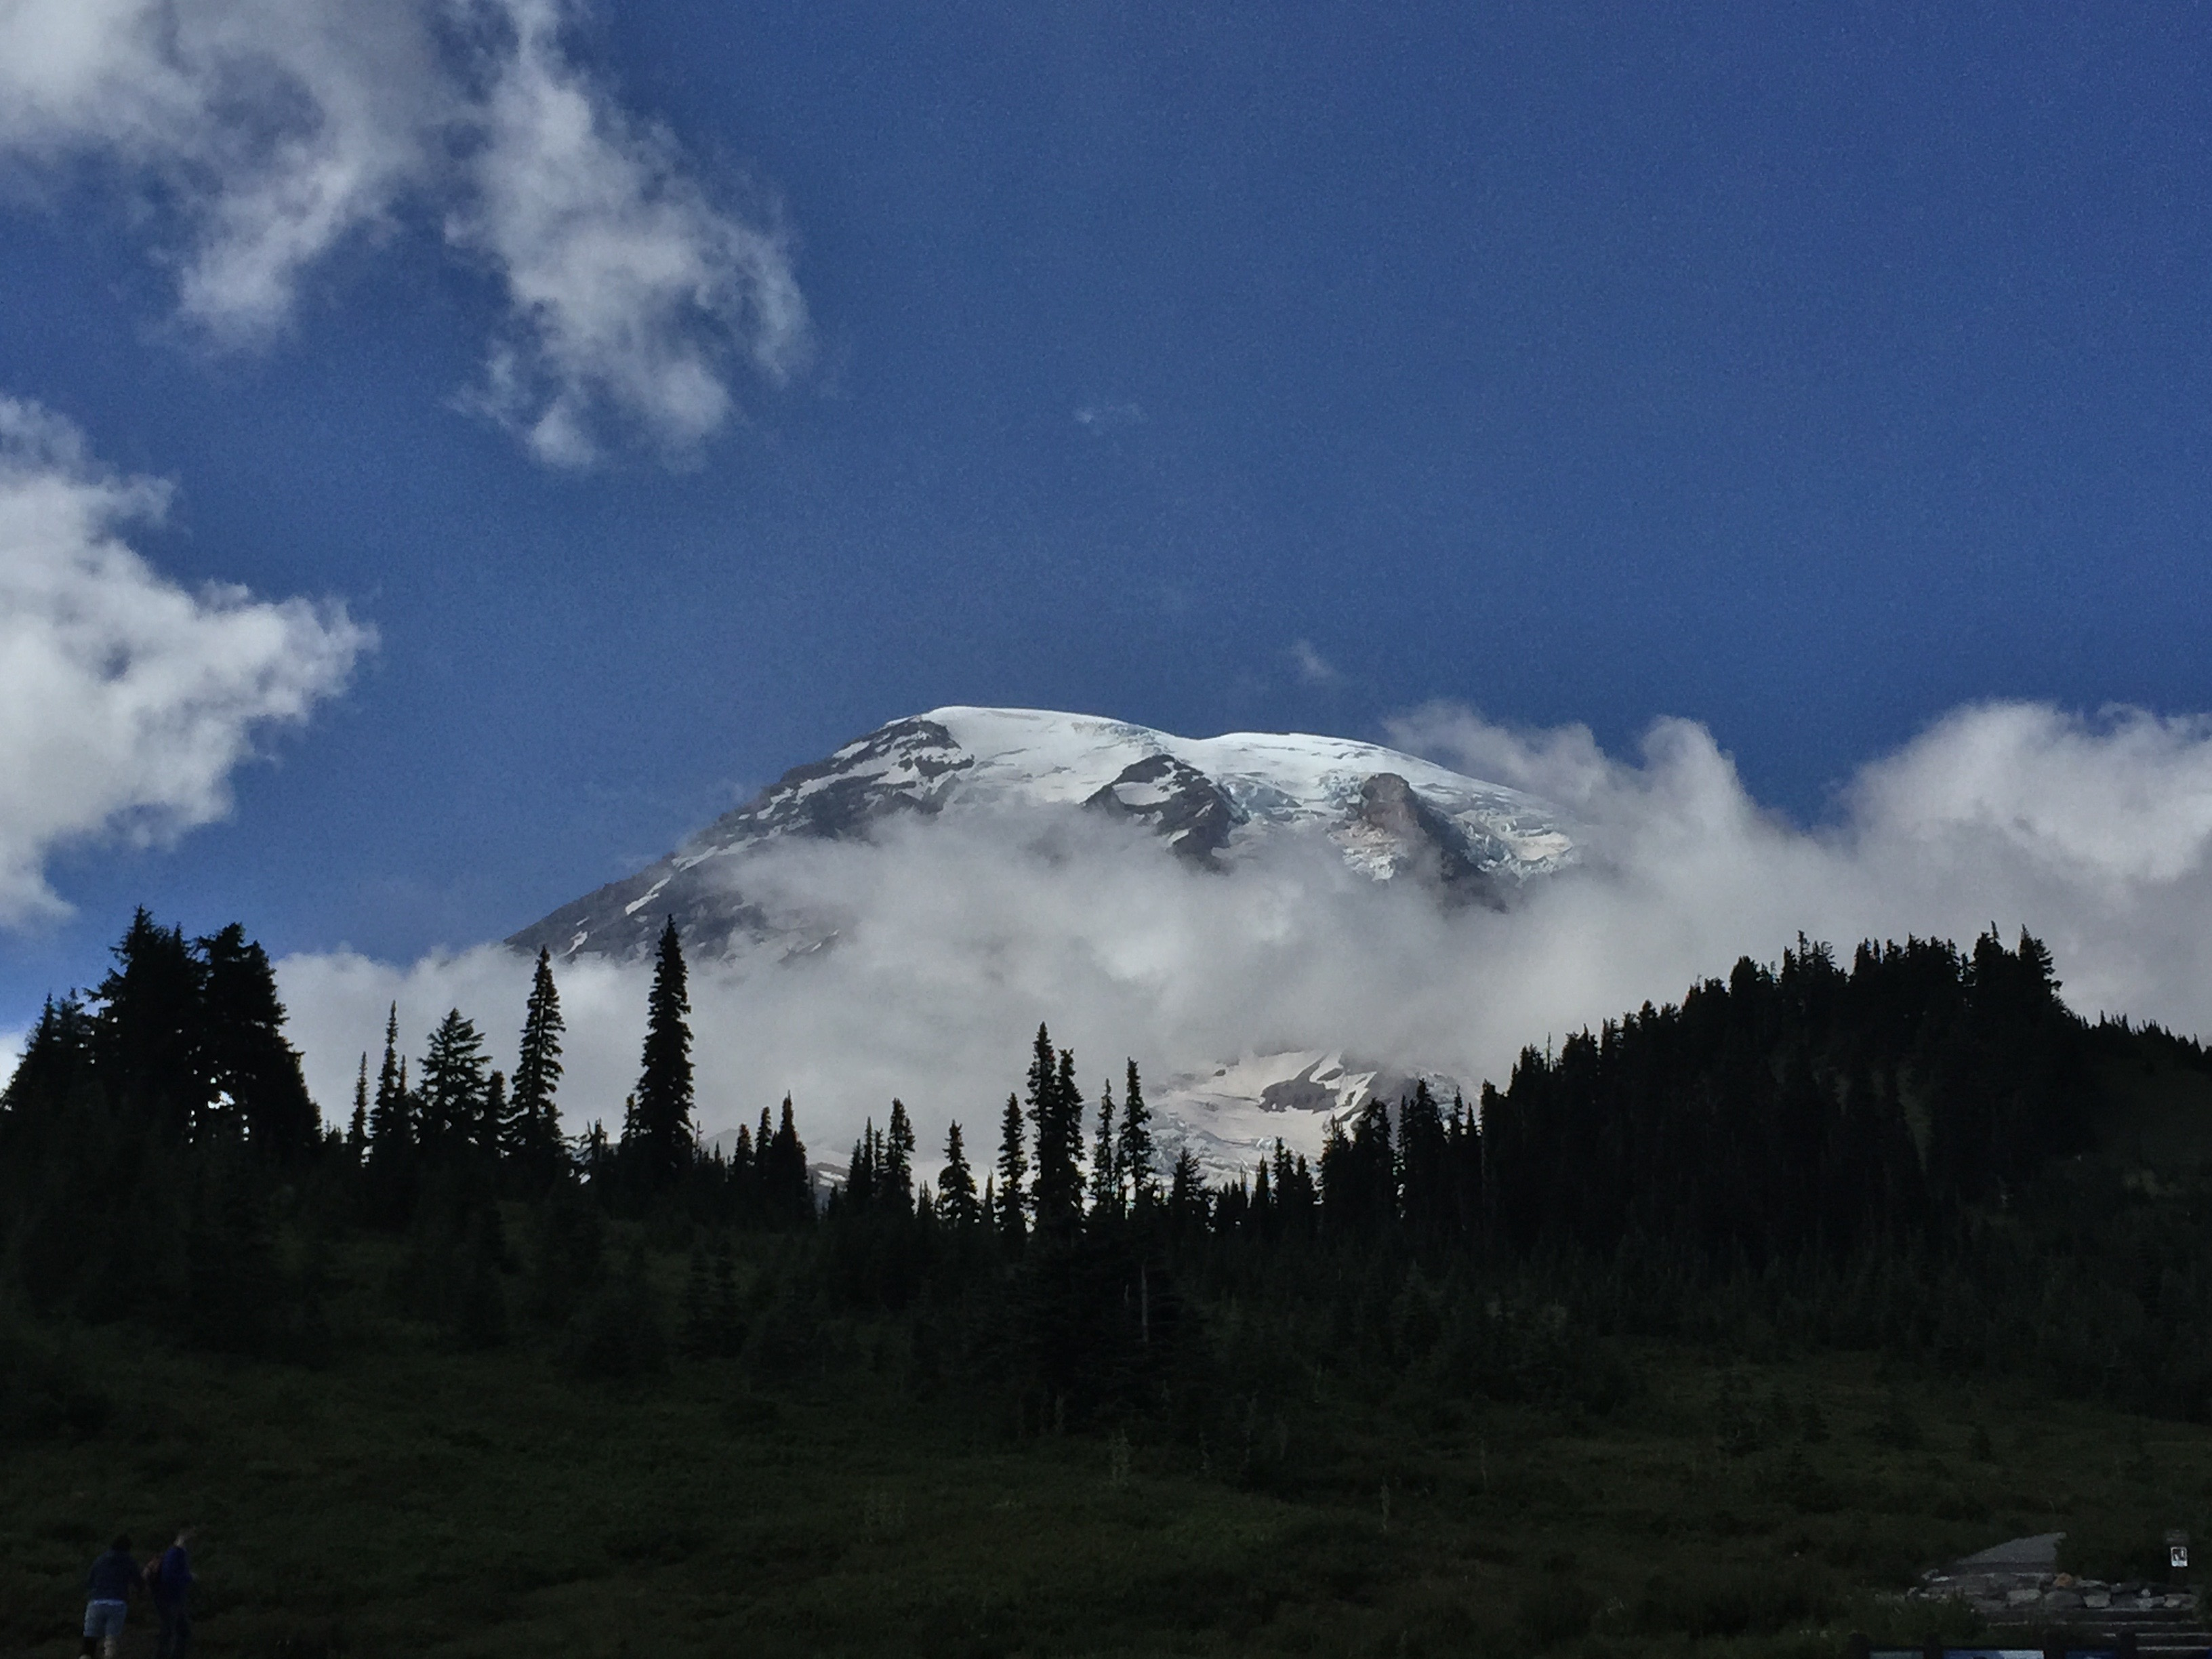 Mount Rainier at Mount Rainier National Park in Washington